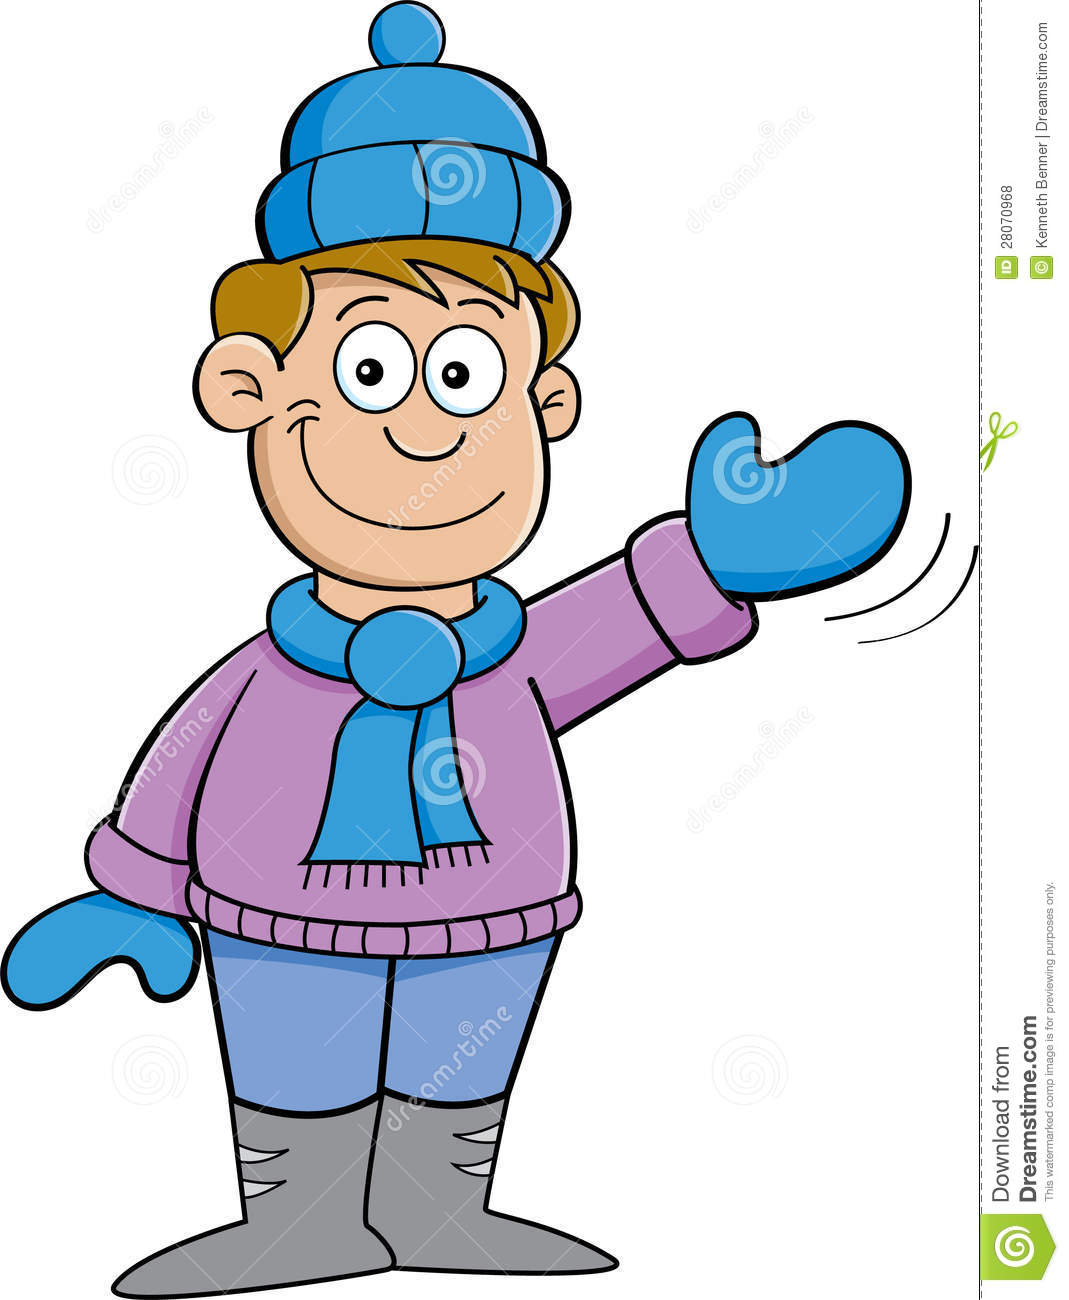 cartoon boy in winter clothes waving royalty free stock